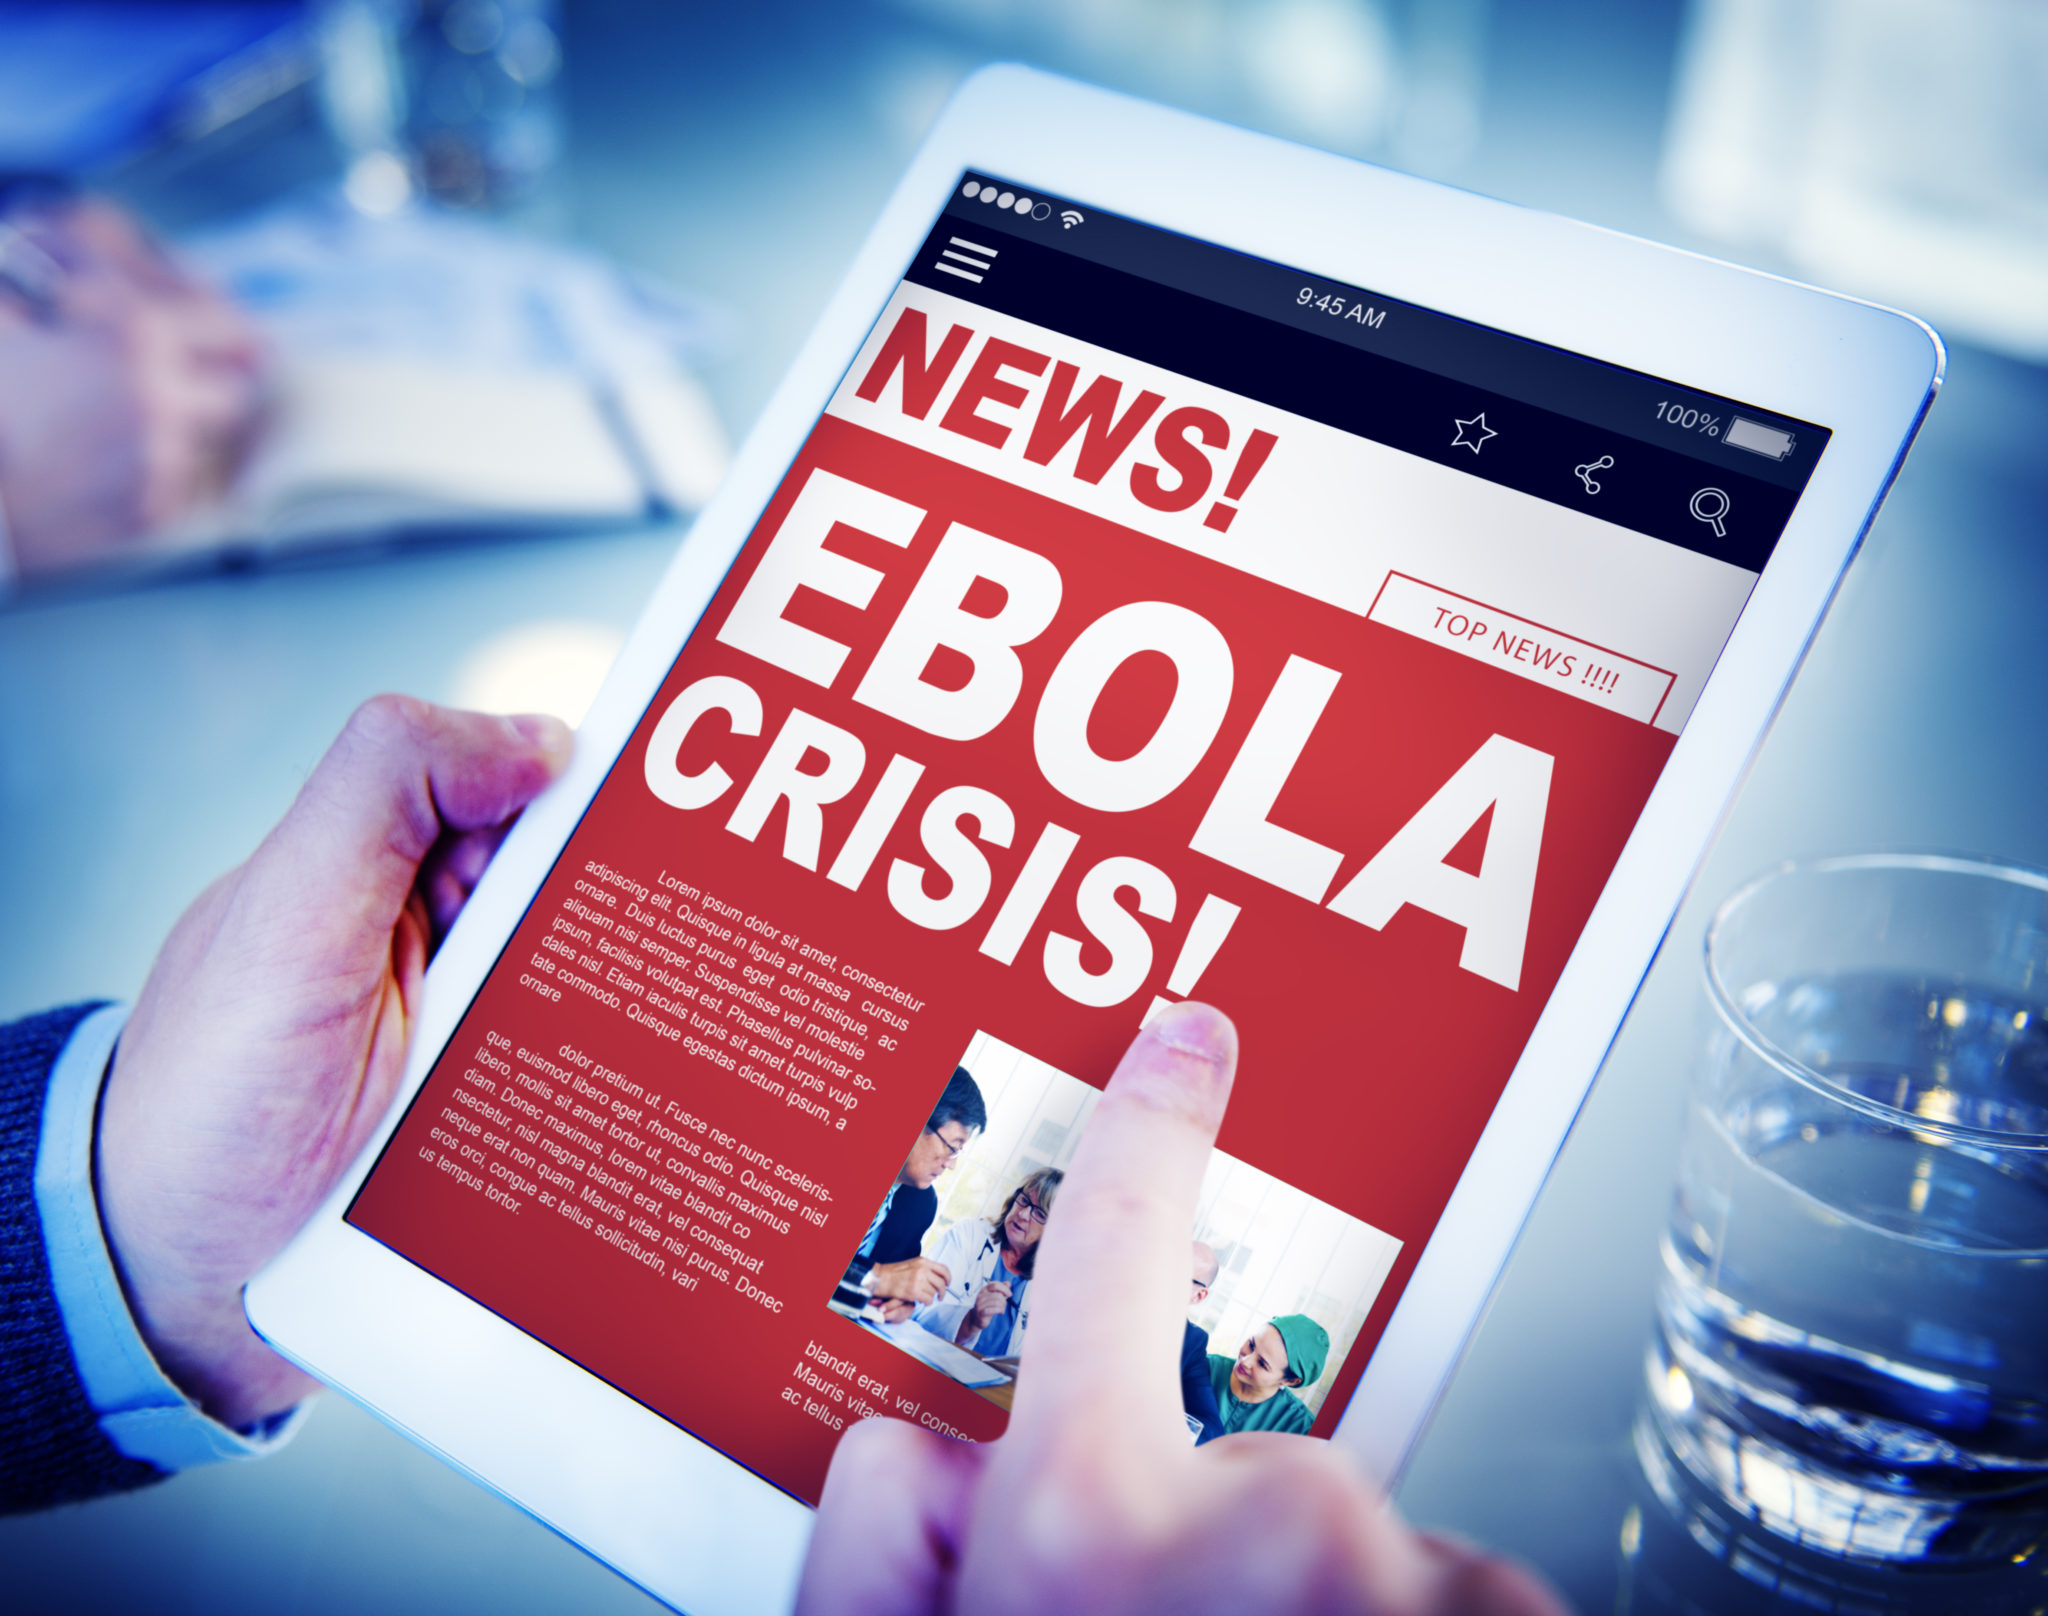 Ebola Virus Disease treatment Vaccine could be the game changer in the DAR Outbreak